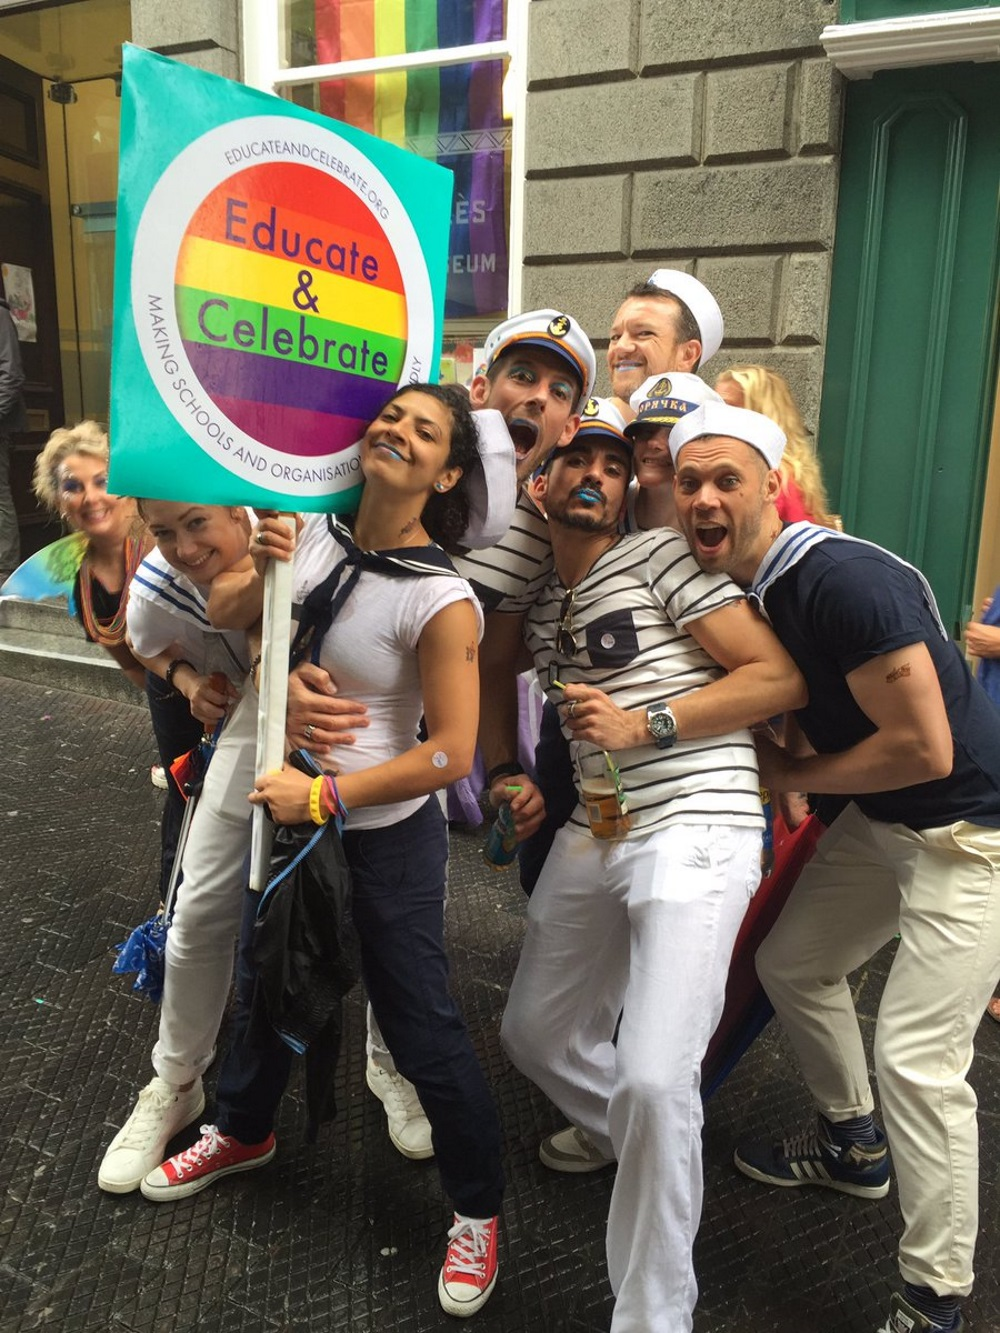 Guernsey Pride 2016 before same-sex marriages started